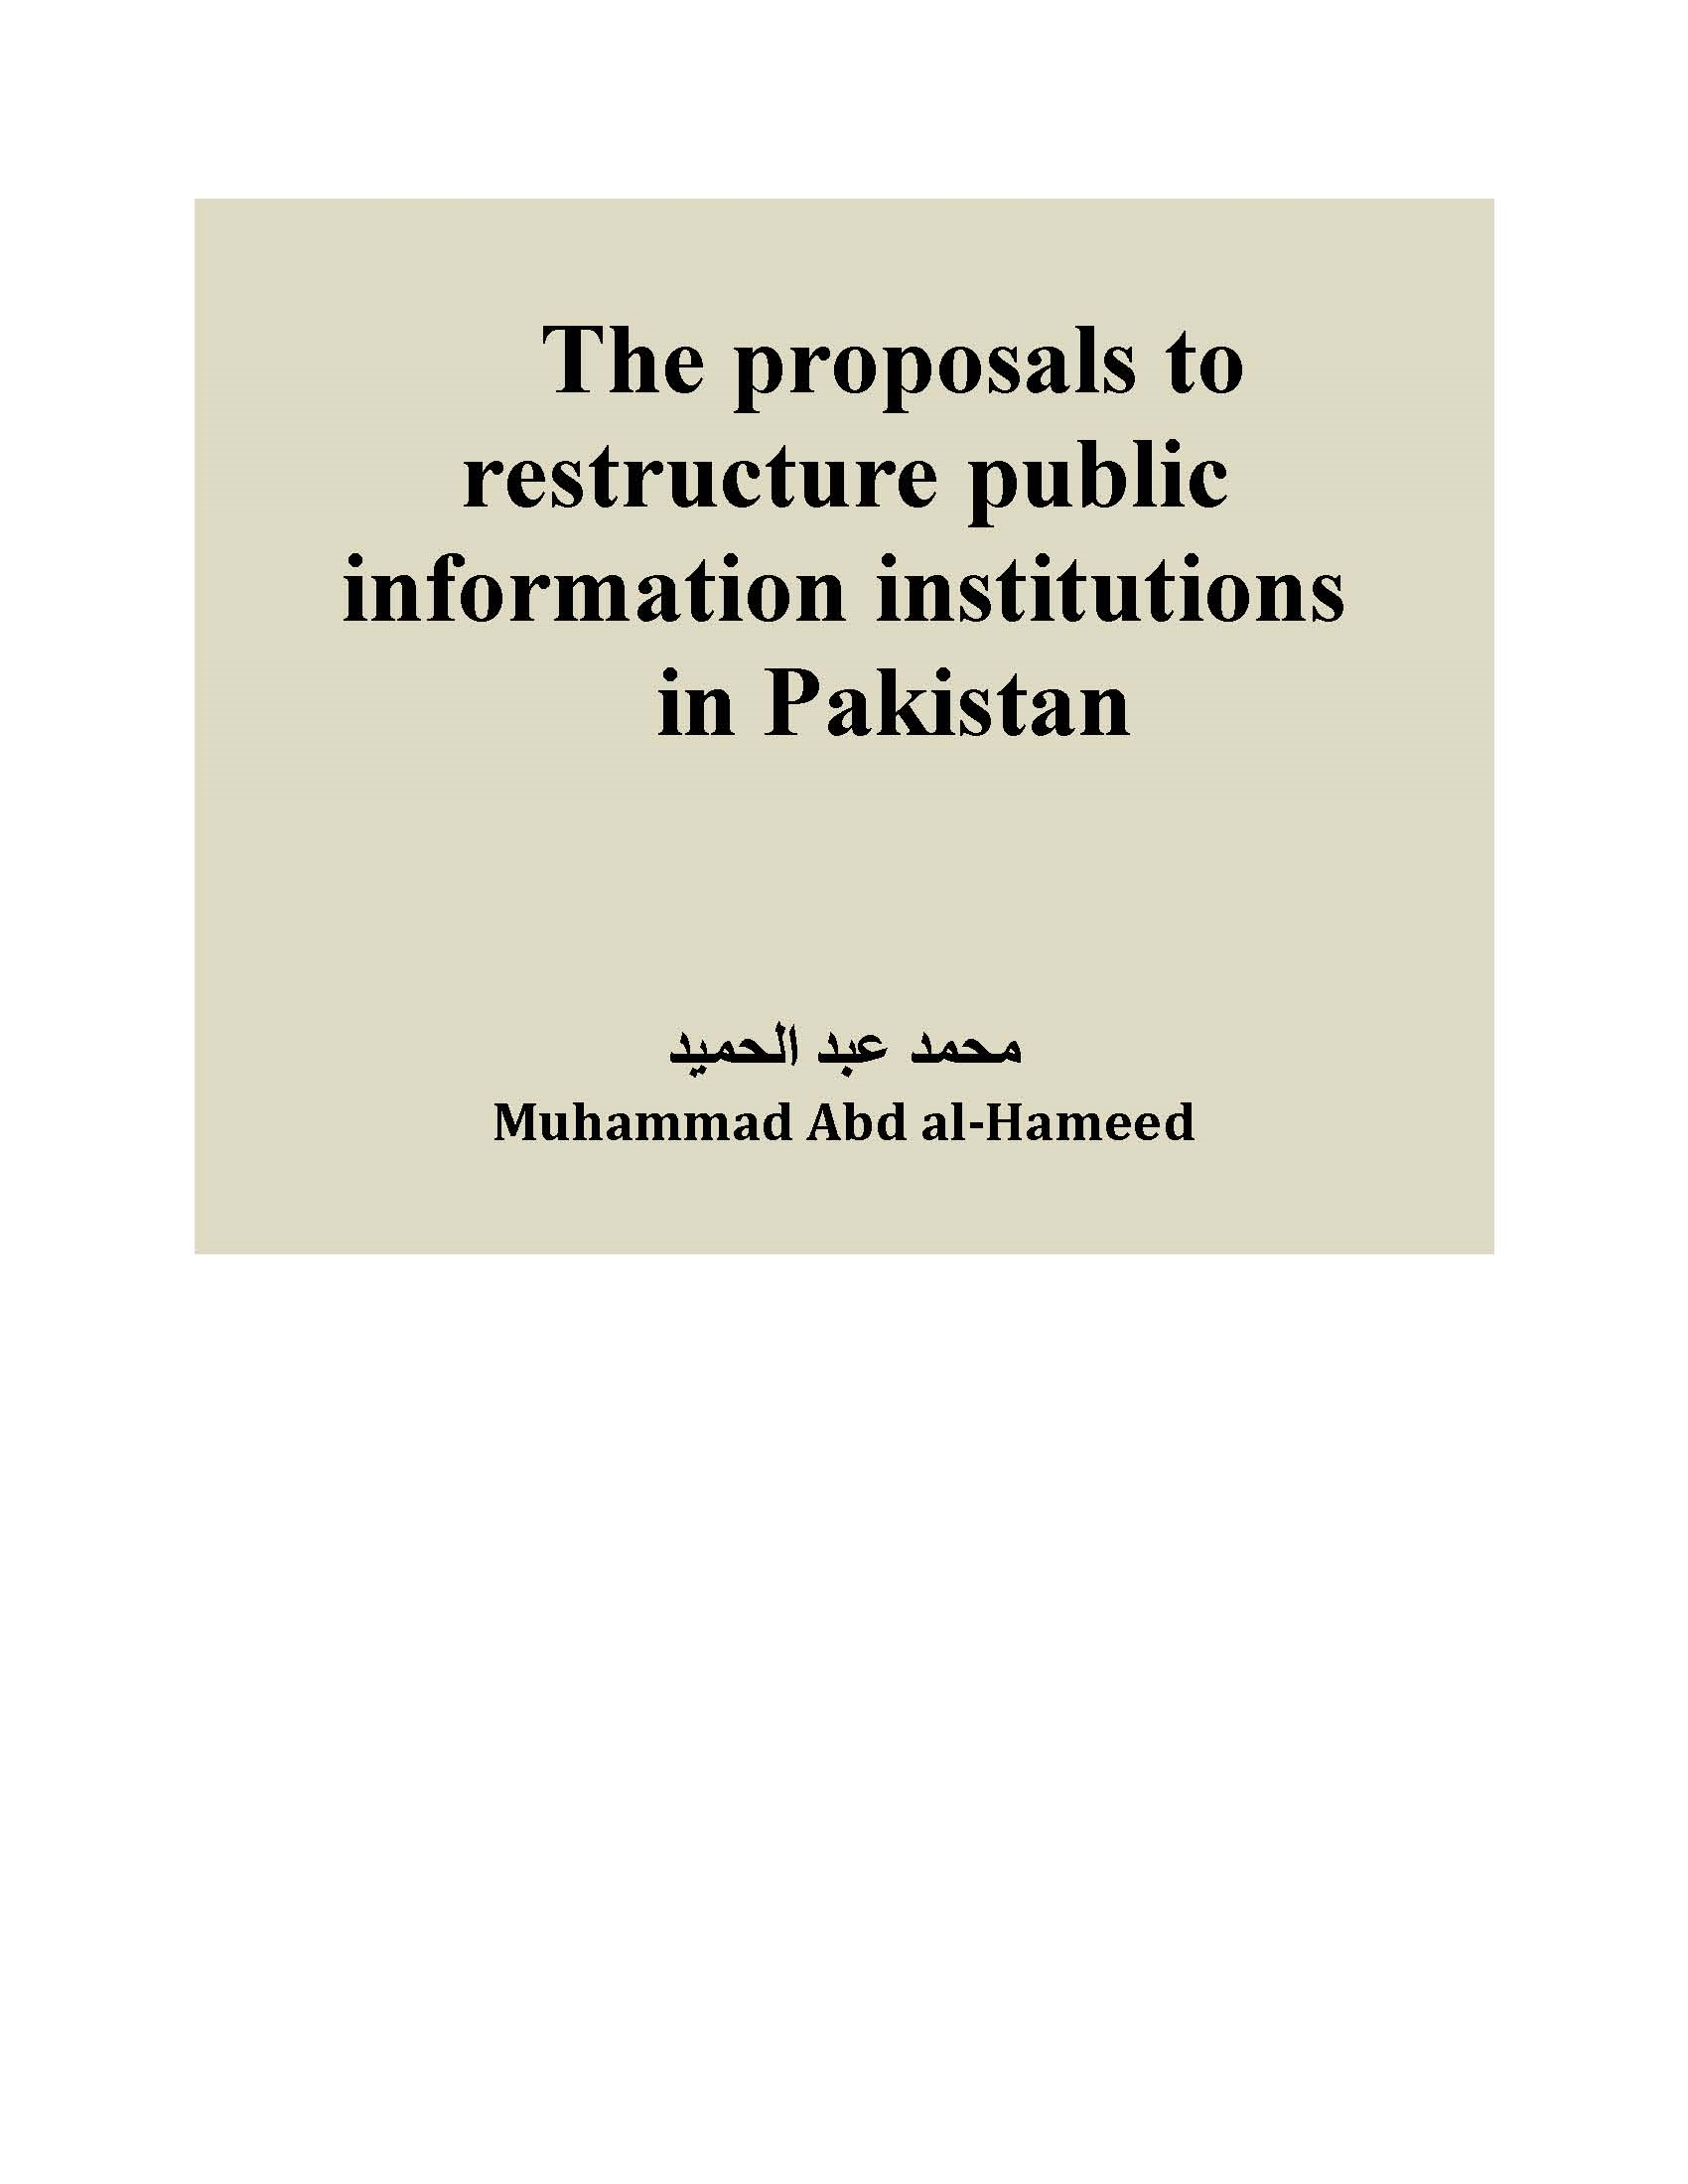 The proposals to restructure public information institutions in Pakistan